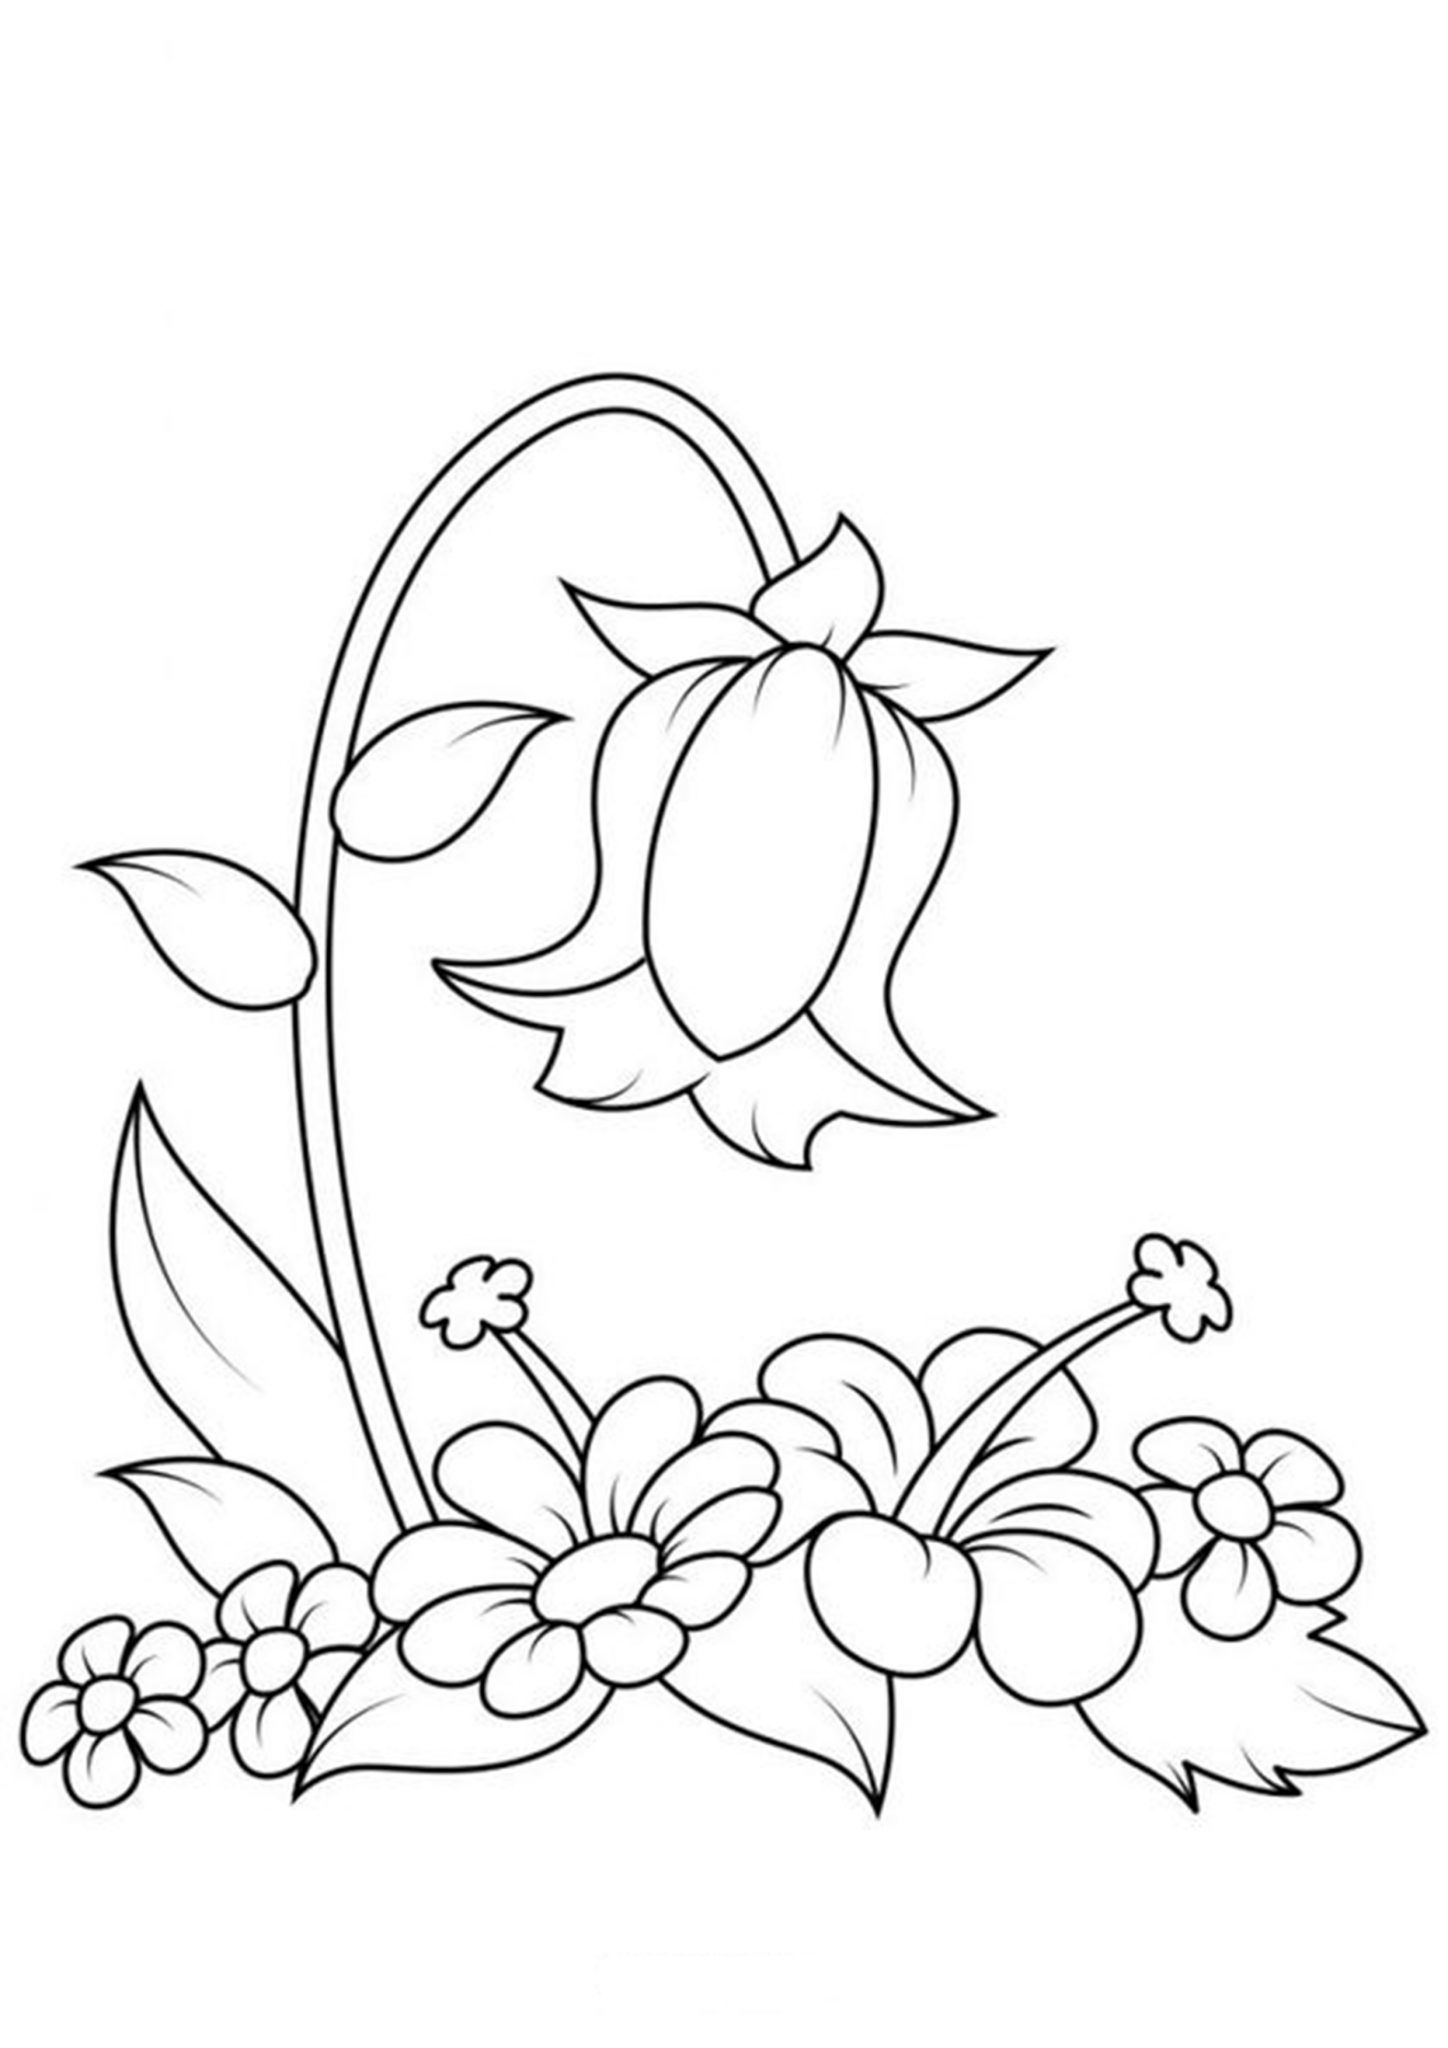 Free Easy To Print Flower Coloring Pages Flower Coloring Pages Embroidery Patterns Vintage Colouring Pages